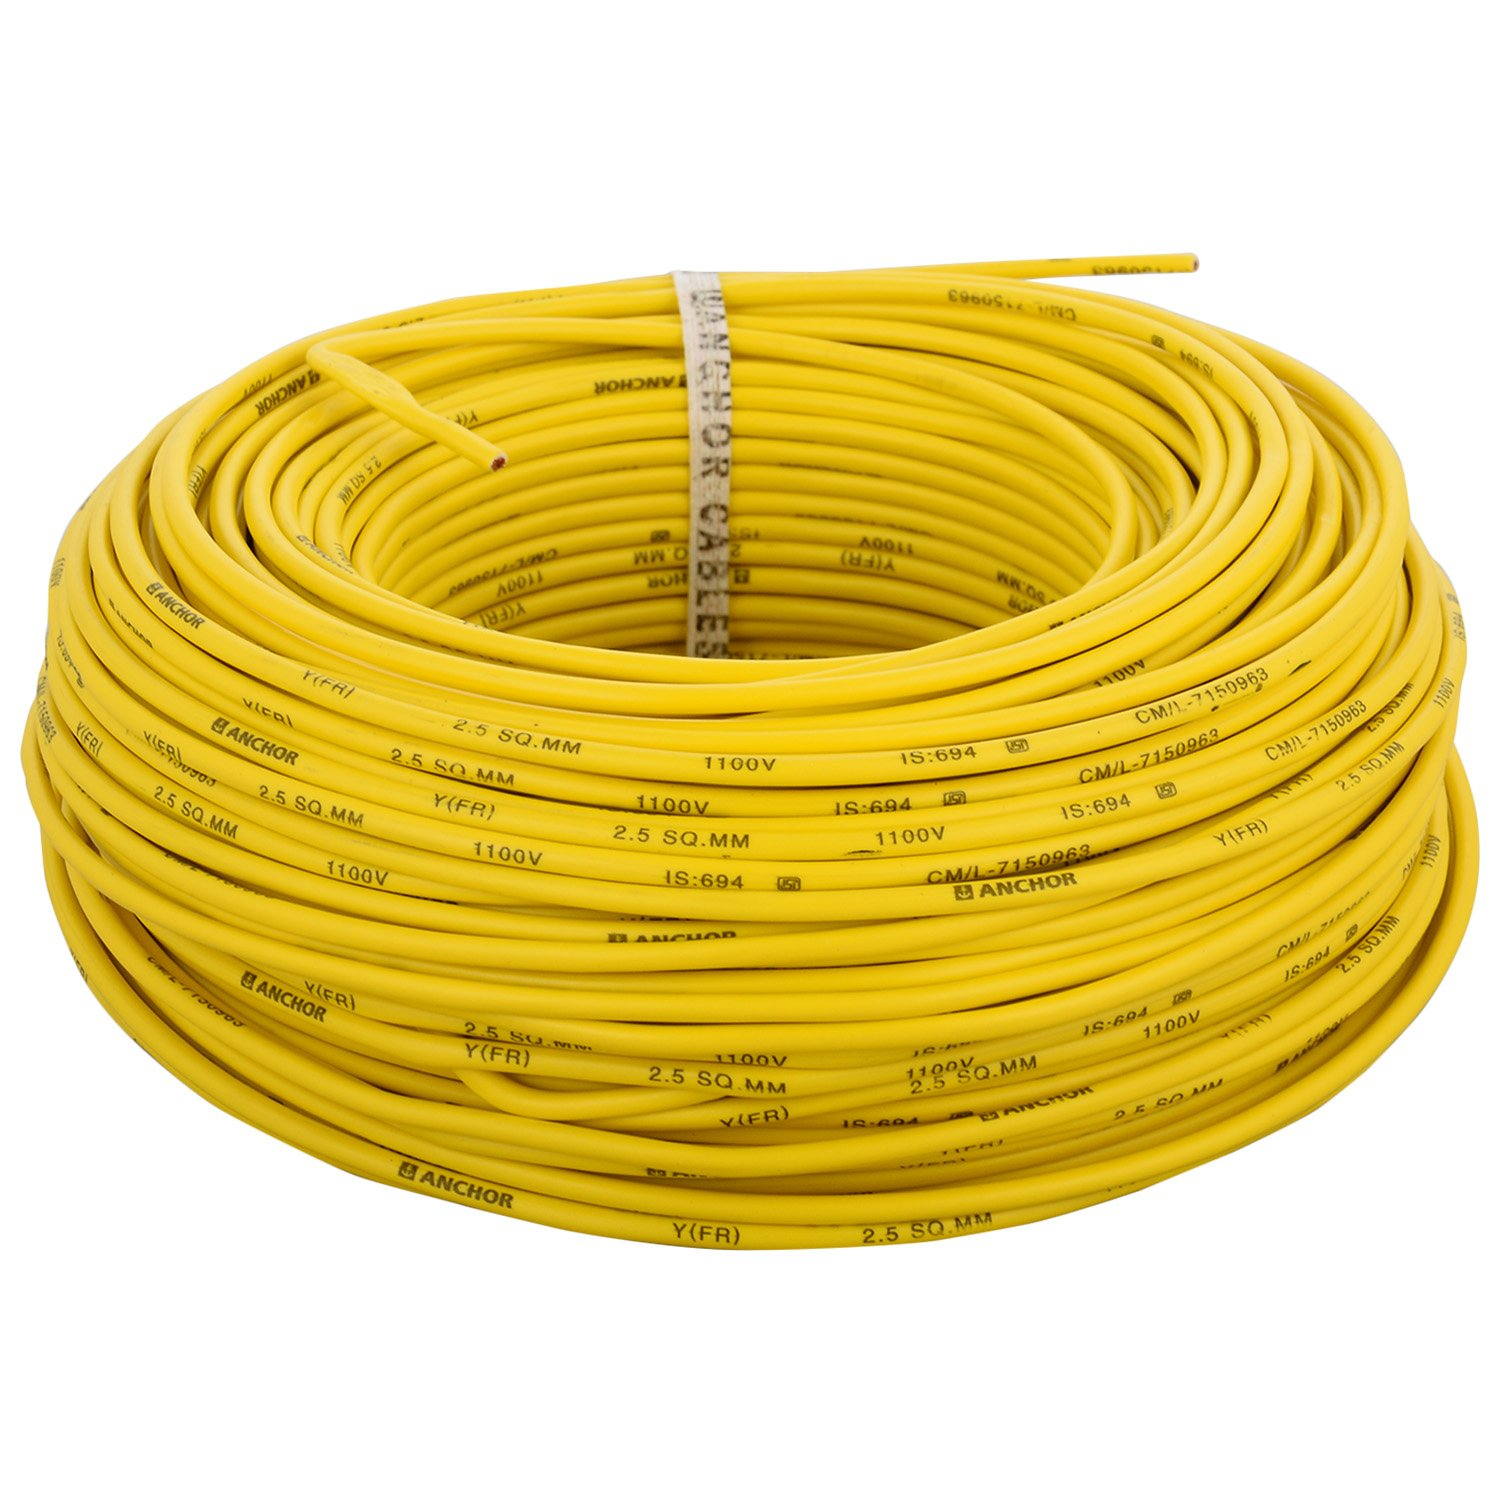 Cable buy electric cable 2 5 sq mm cable 1 5 sqmm wire product on - Anchor Insulated Copper Pvc Cable 2 5 Sq Mm Wire Yellow Amazon In Amazon In